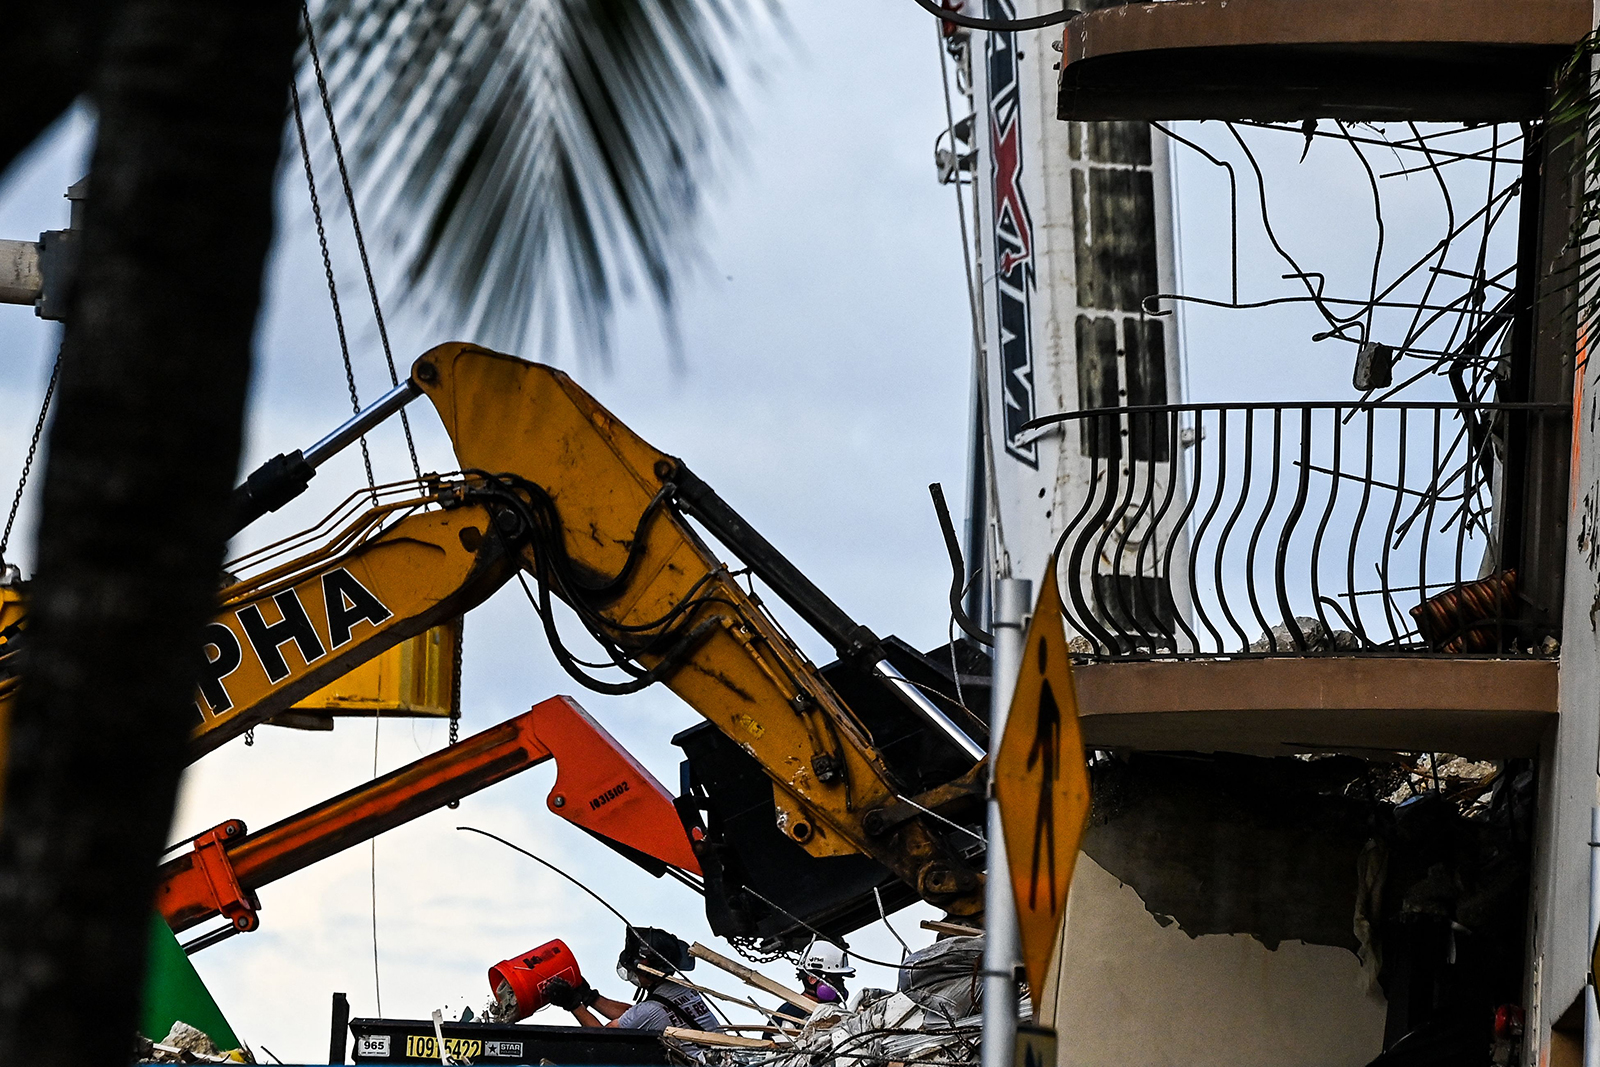 Rescue workers continue to search through rubble at the site of a collapsed building in Surfside, Florida, north of Miami Beach on June 27.